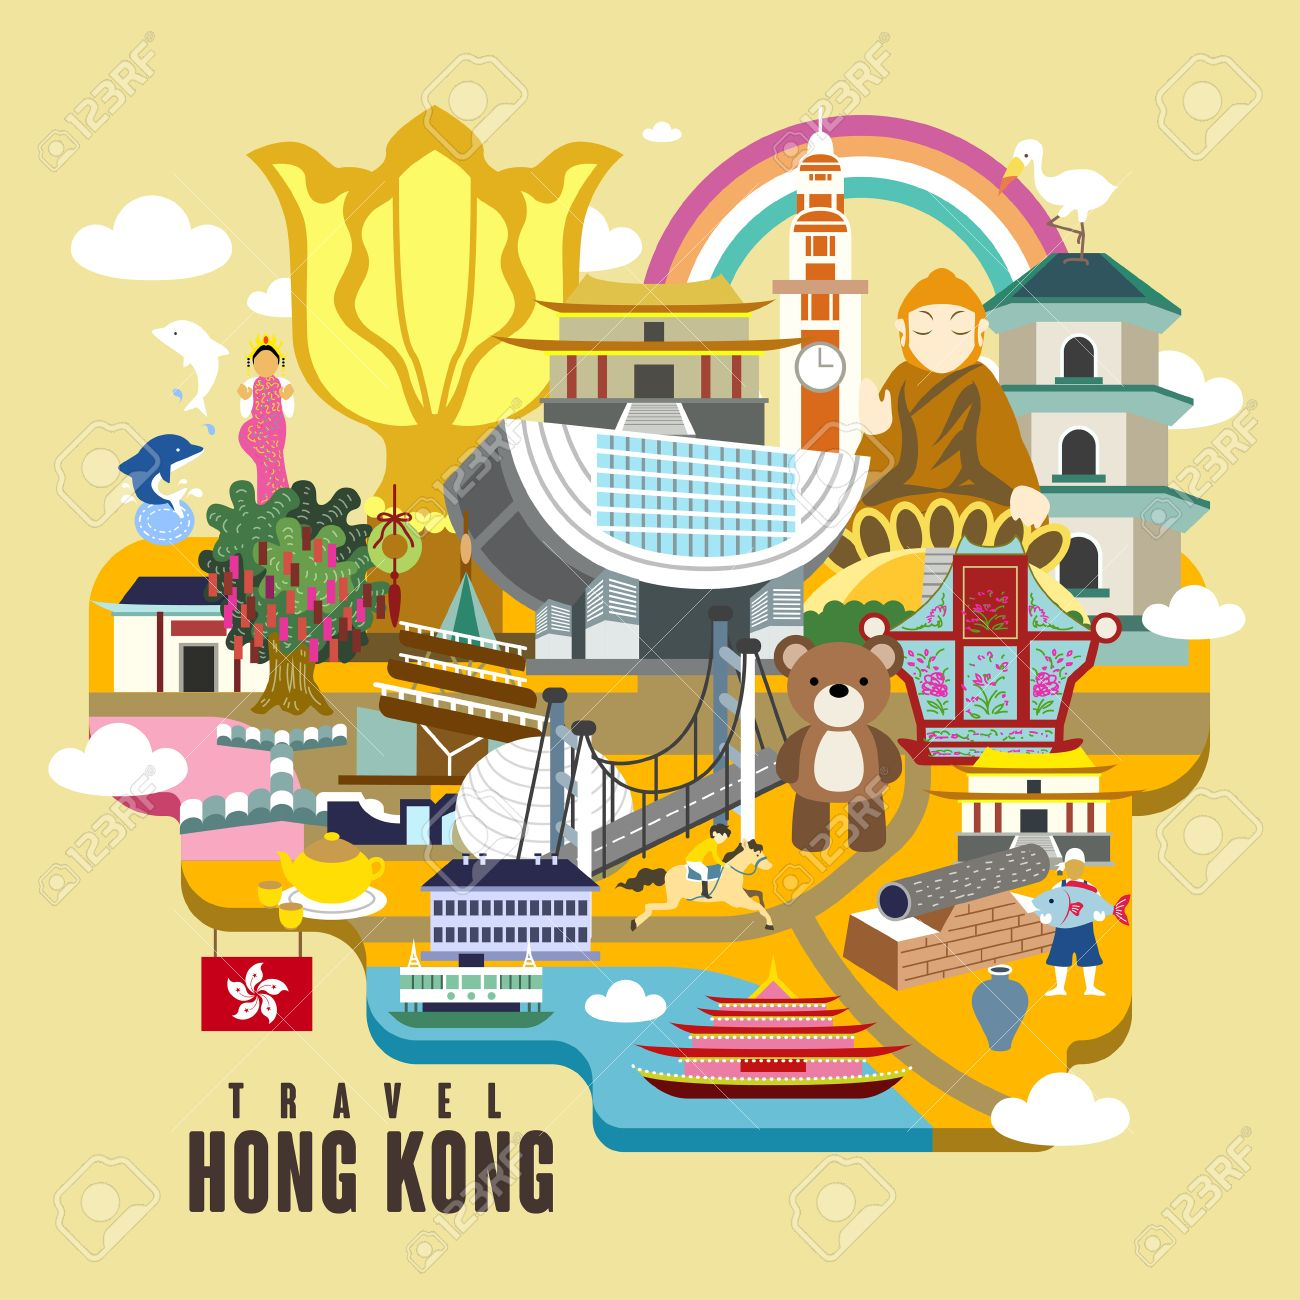 Poster design hong kong - Hong Kong Travel Poster Design With Attractions In Flat Style Stock Vector 48059245